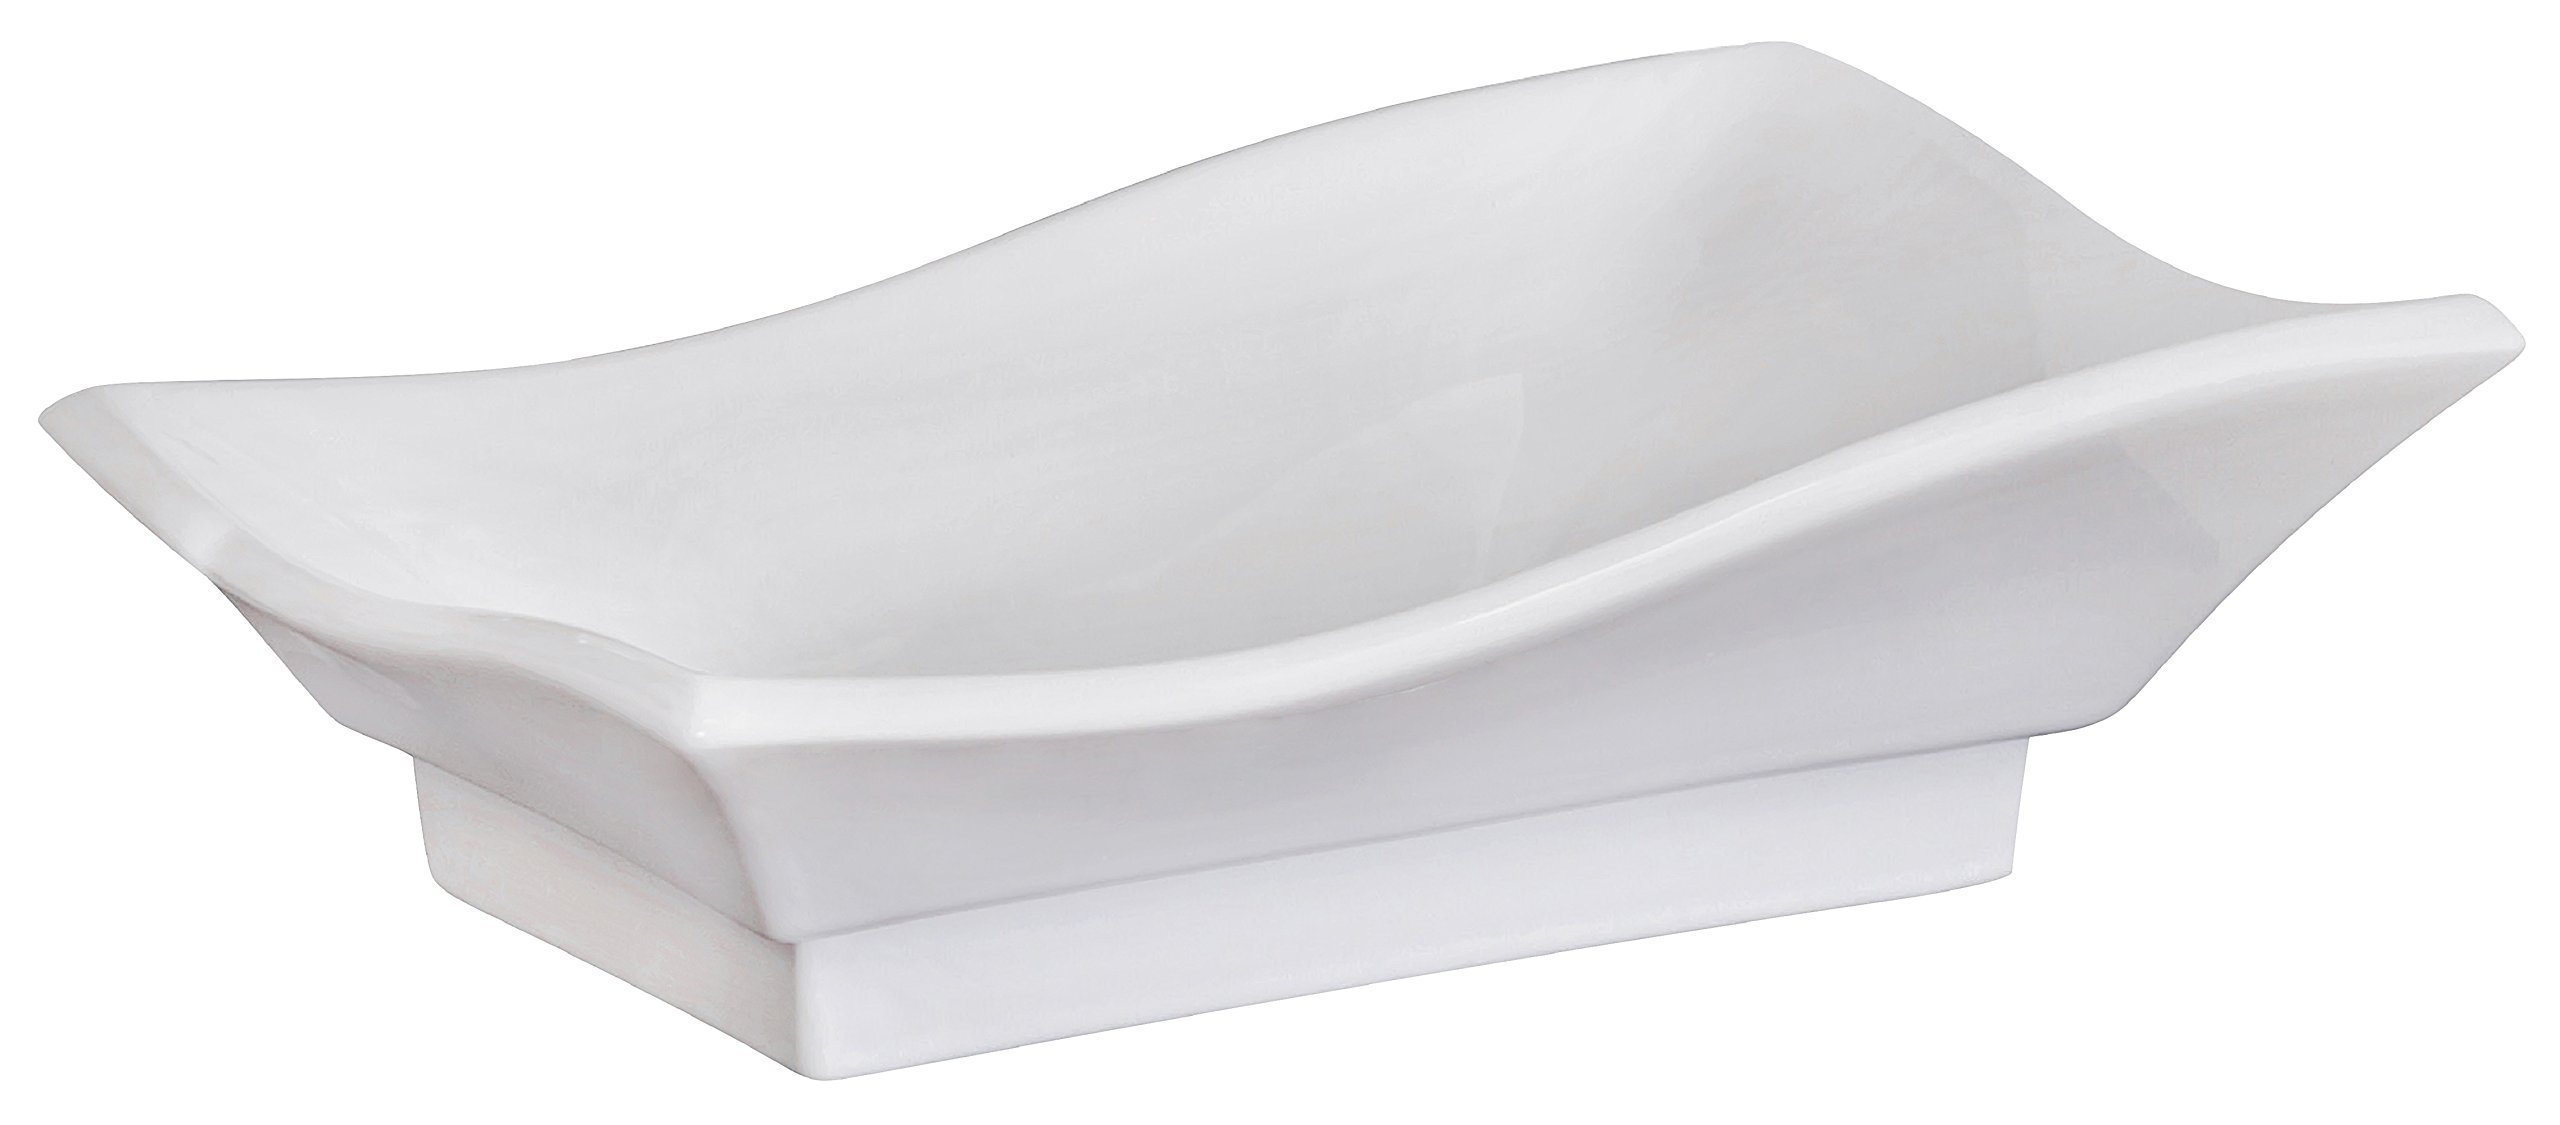 American Imaginations 591   Above Counter Rectangle White Ceramic Vessel for Wall or Deck Mount Faucet Installation by American Imaginations